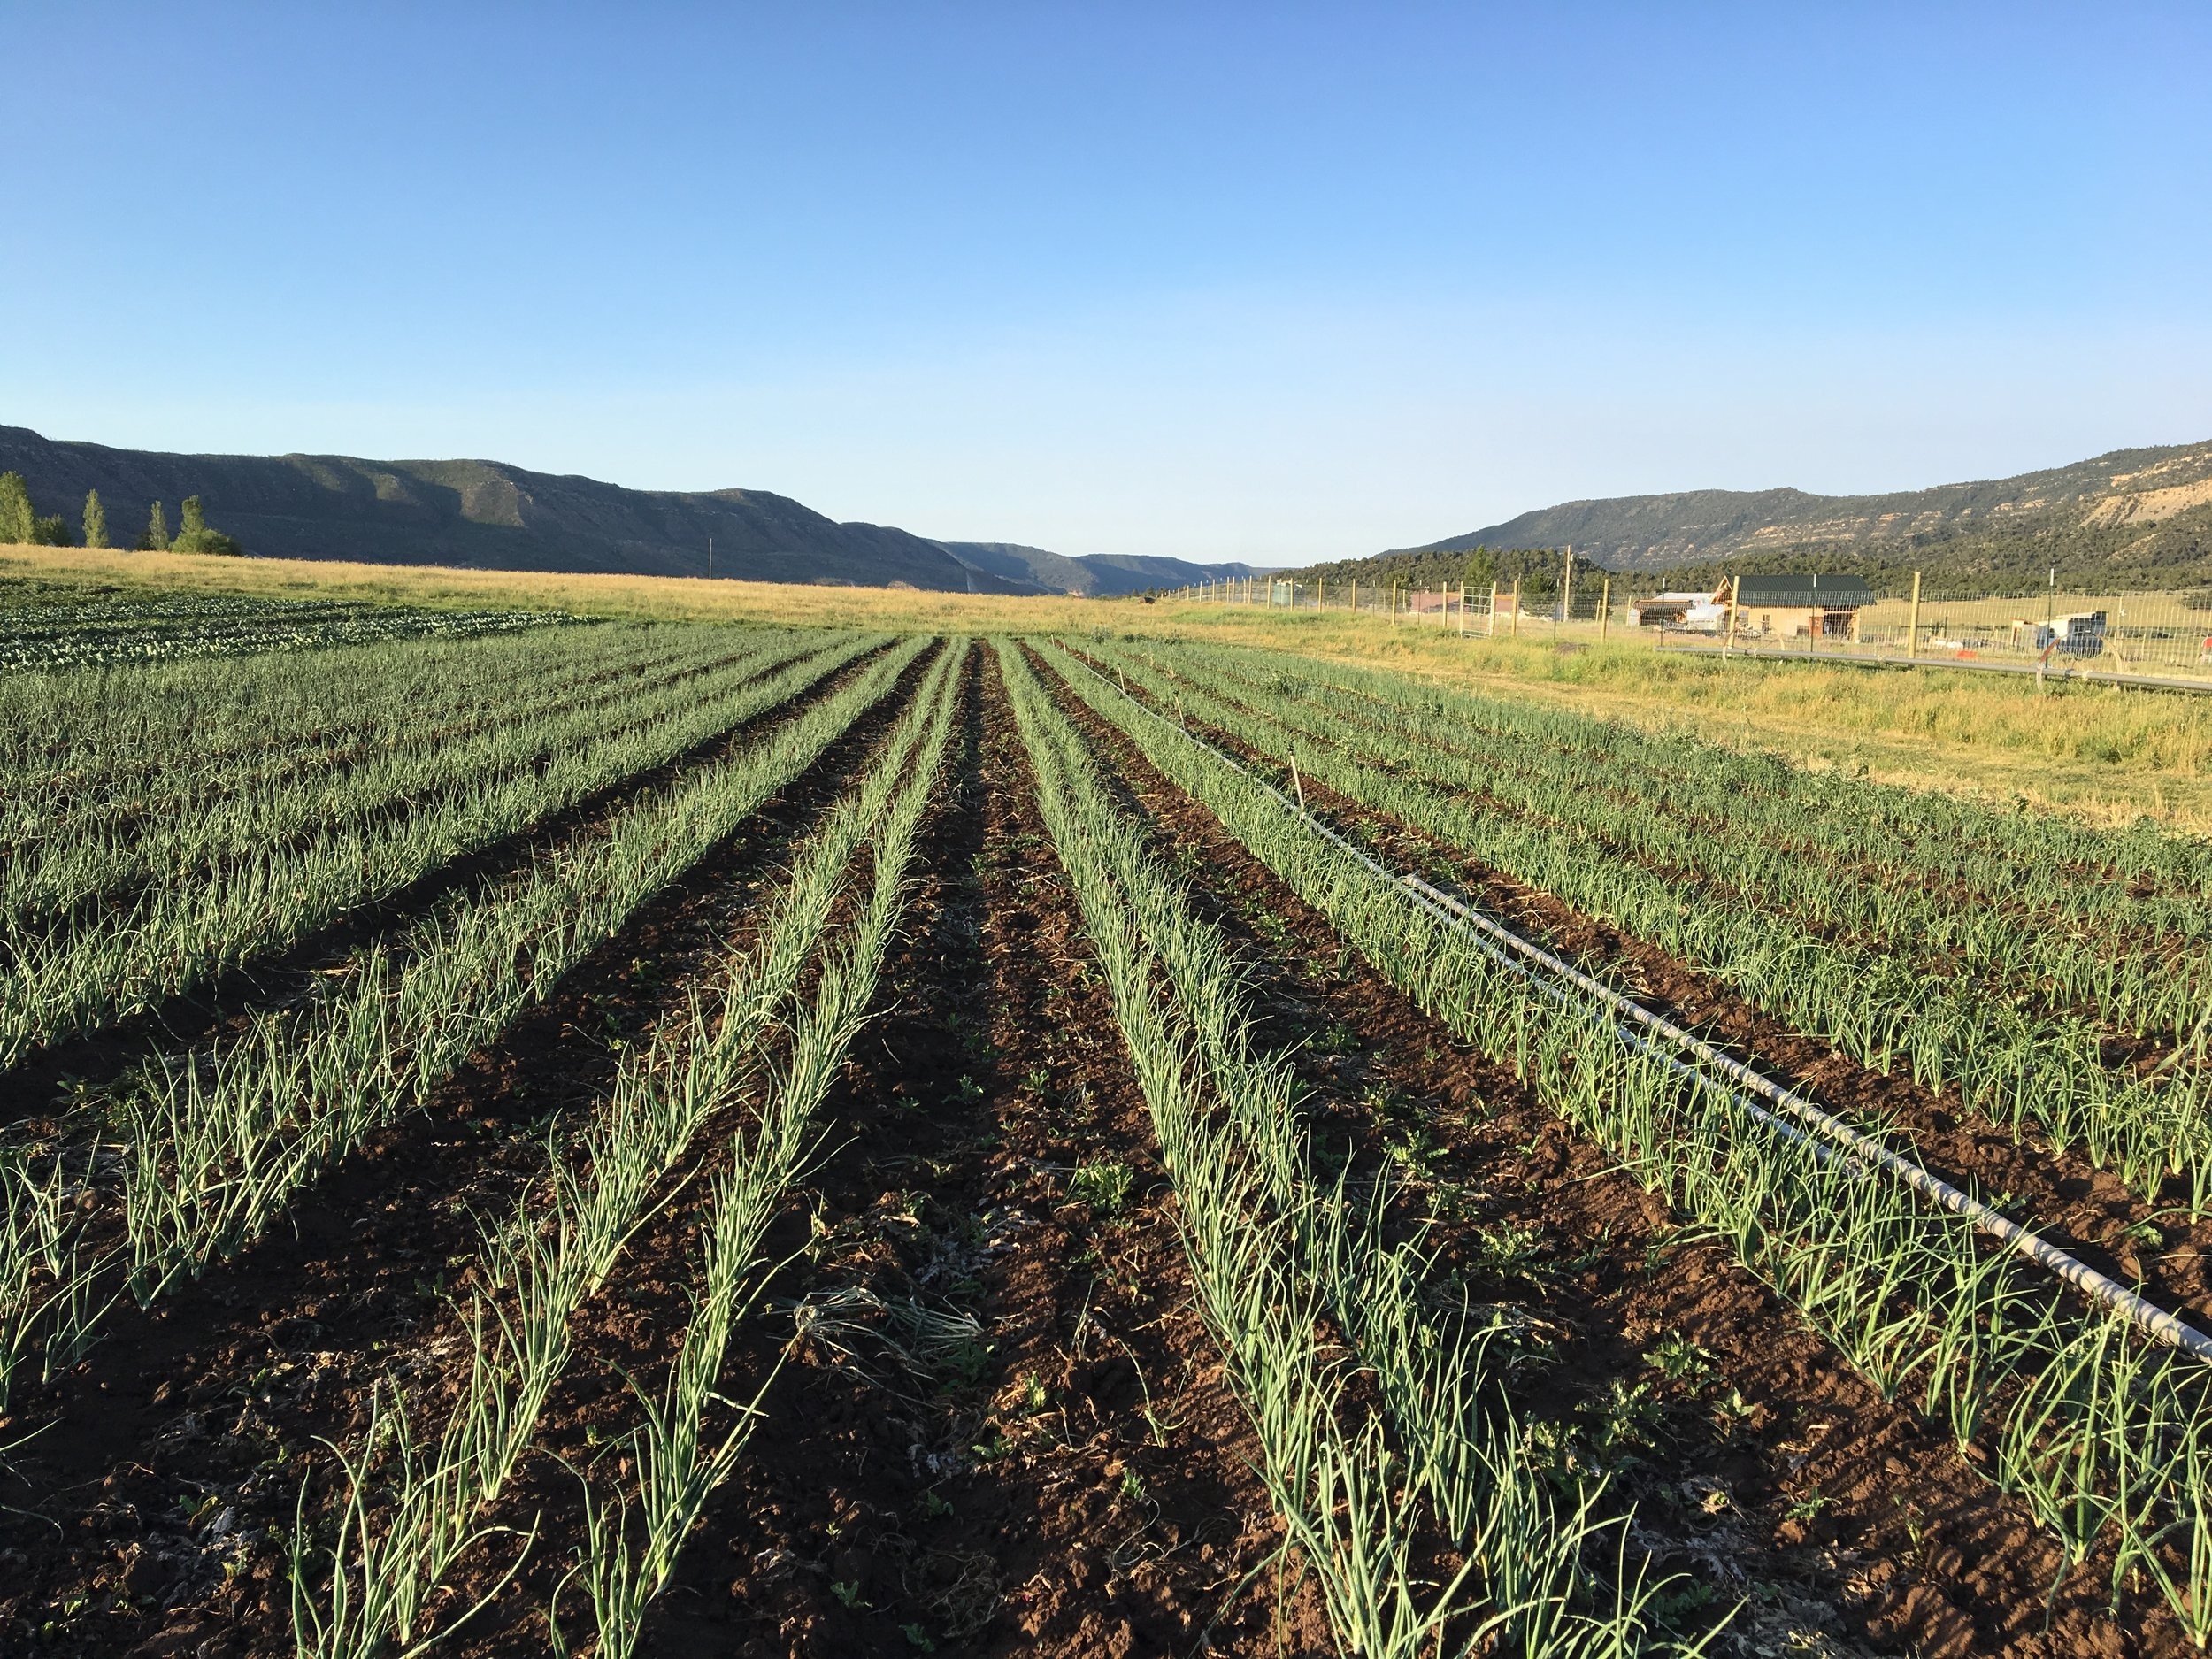 Freshly weeded onions looking lovely